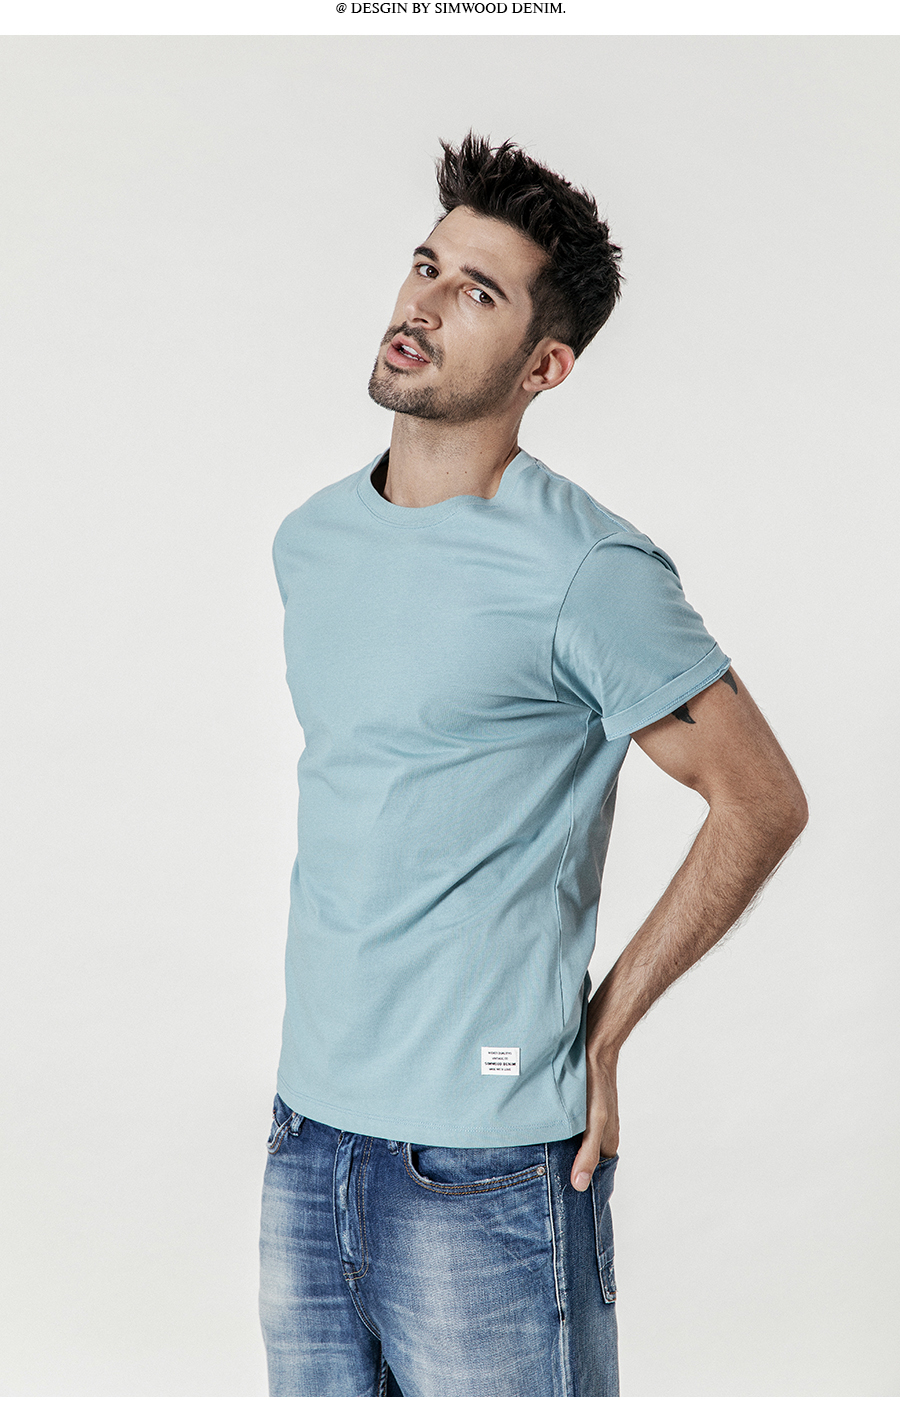 SIMWOOD 19 Summer New T-Shirt Men 100% Cotton Solid Color Casual t shirt Basics O-neck High Quality Plus Size Male Tee 190004 20